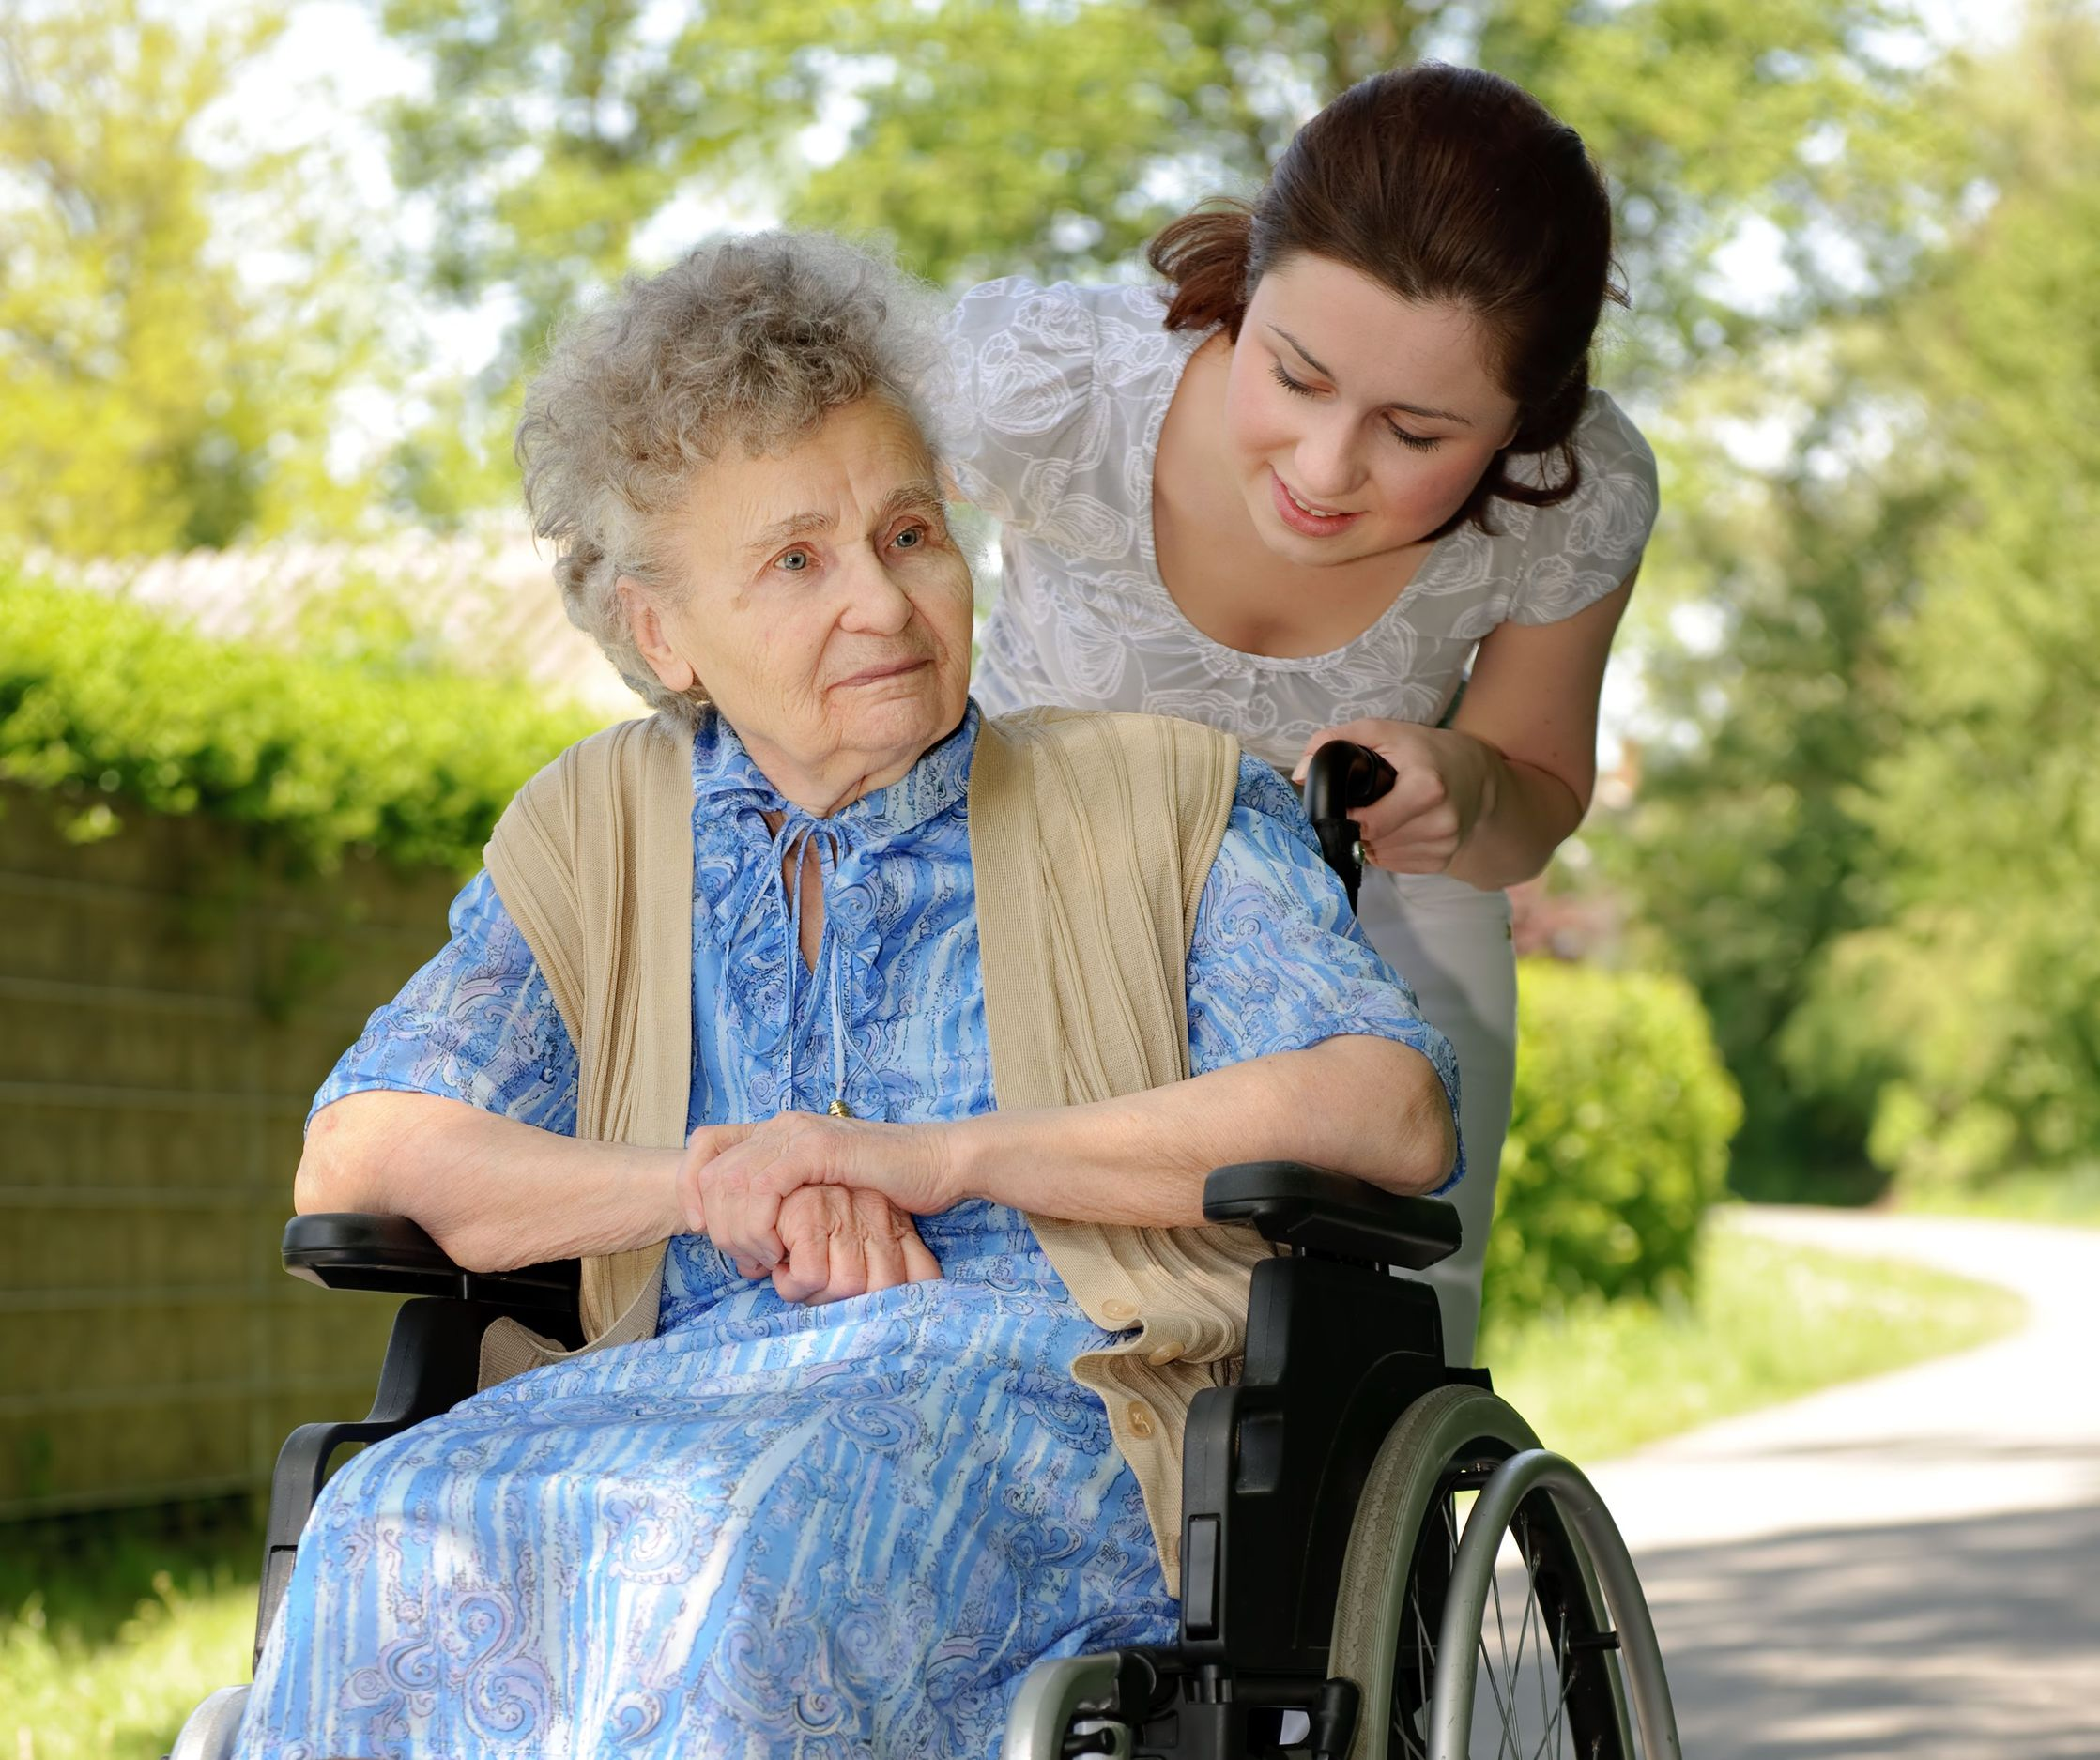 Elder Lady being pushed in wheelchair